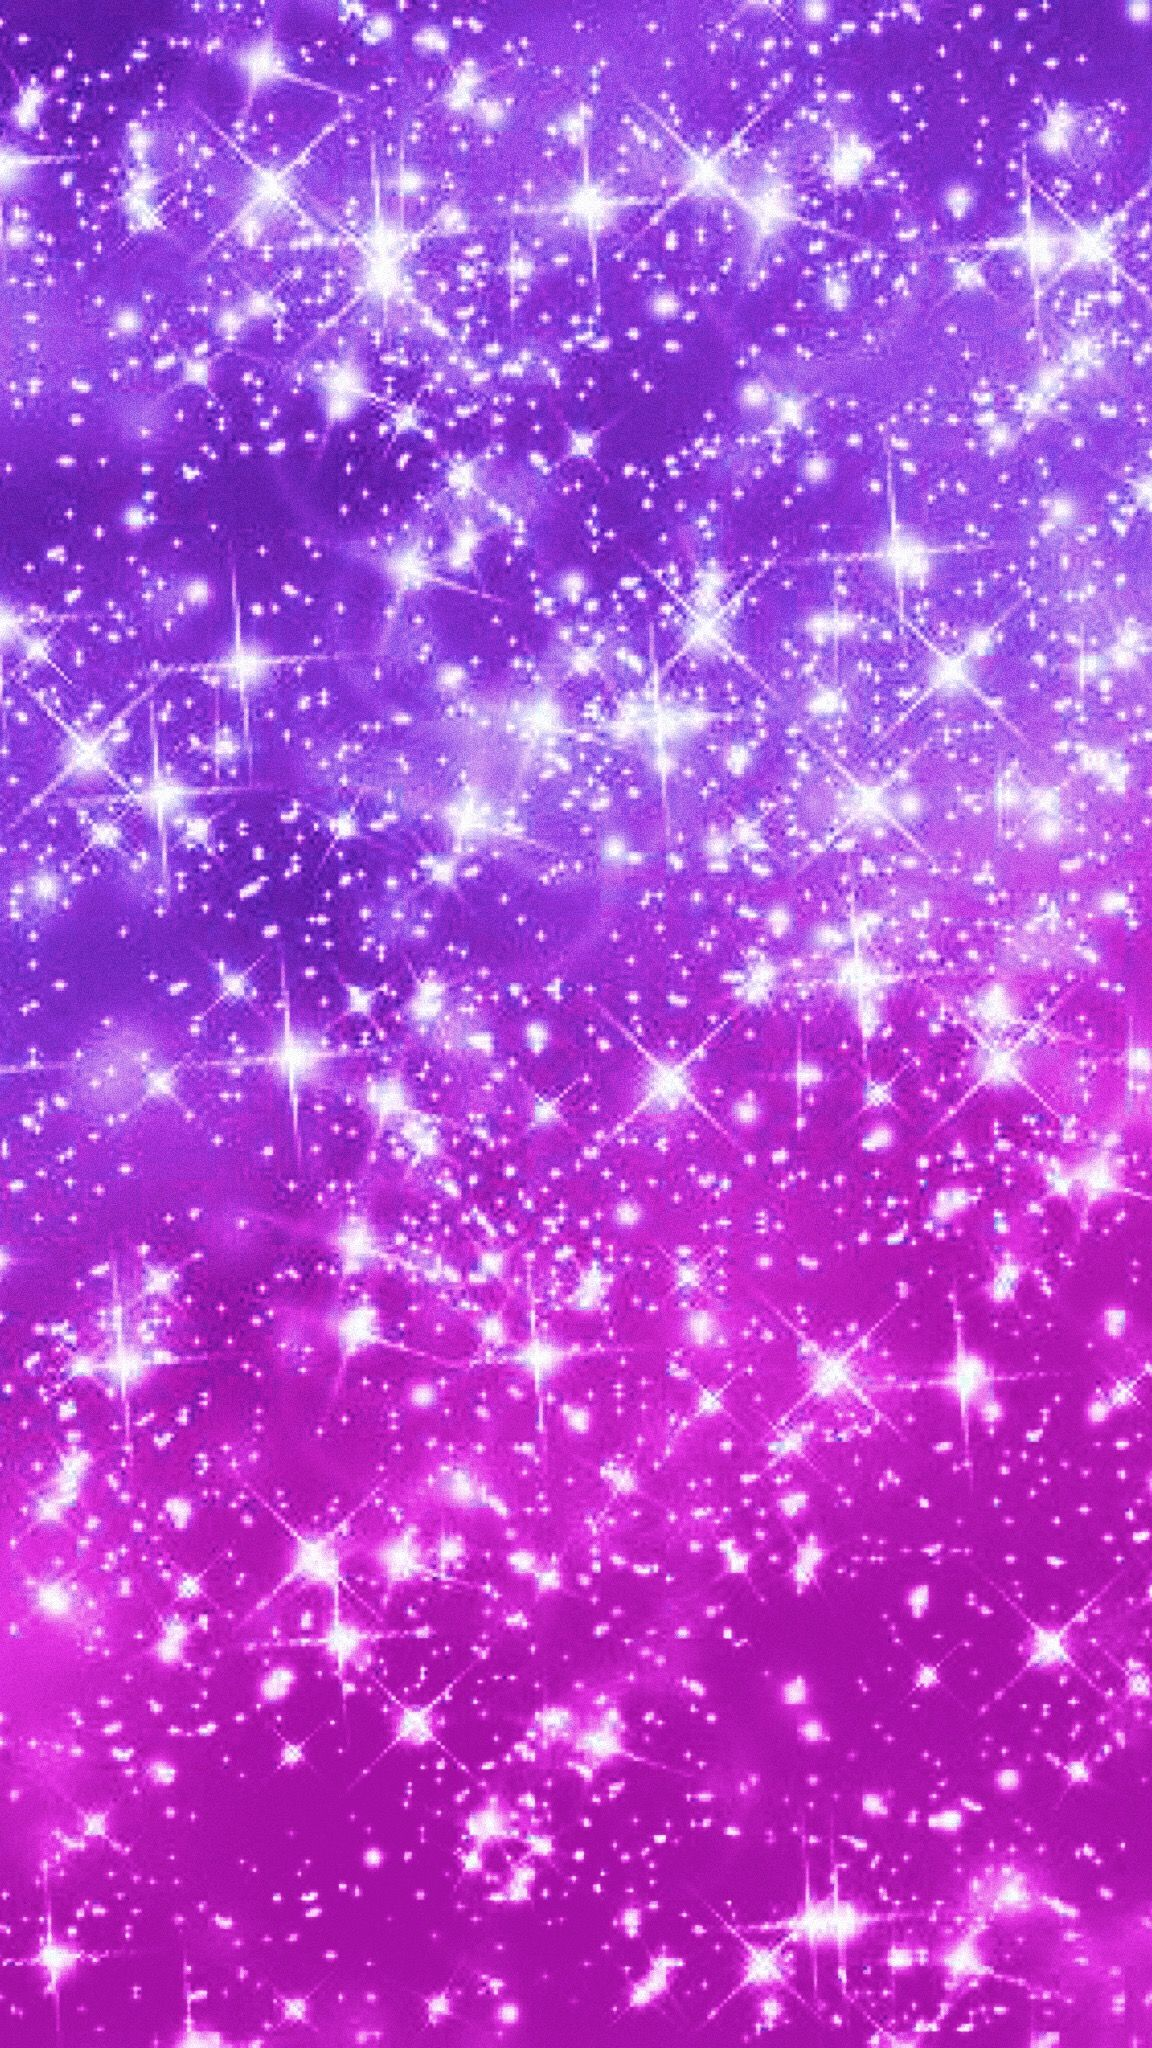 Purple sparkle glitter wallpaper my glitter phone - Purple glitter wallpaper hd ...